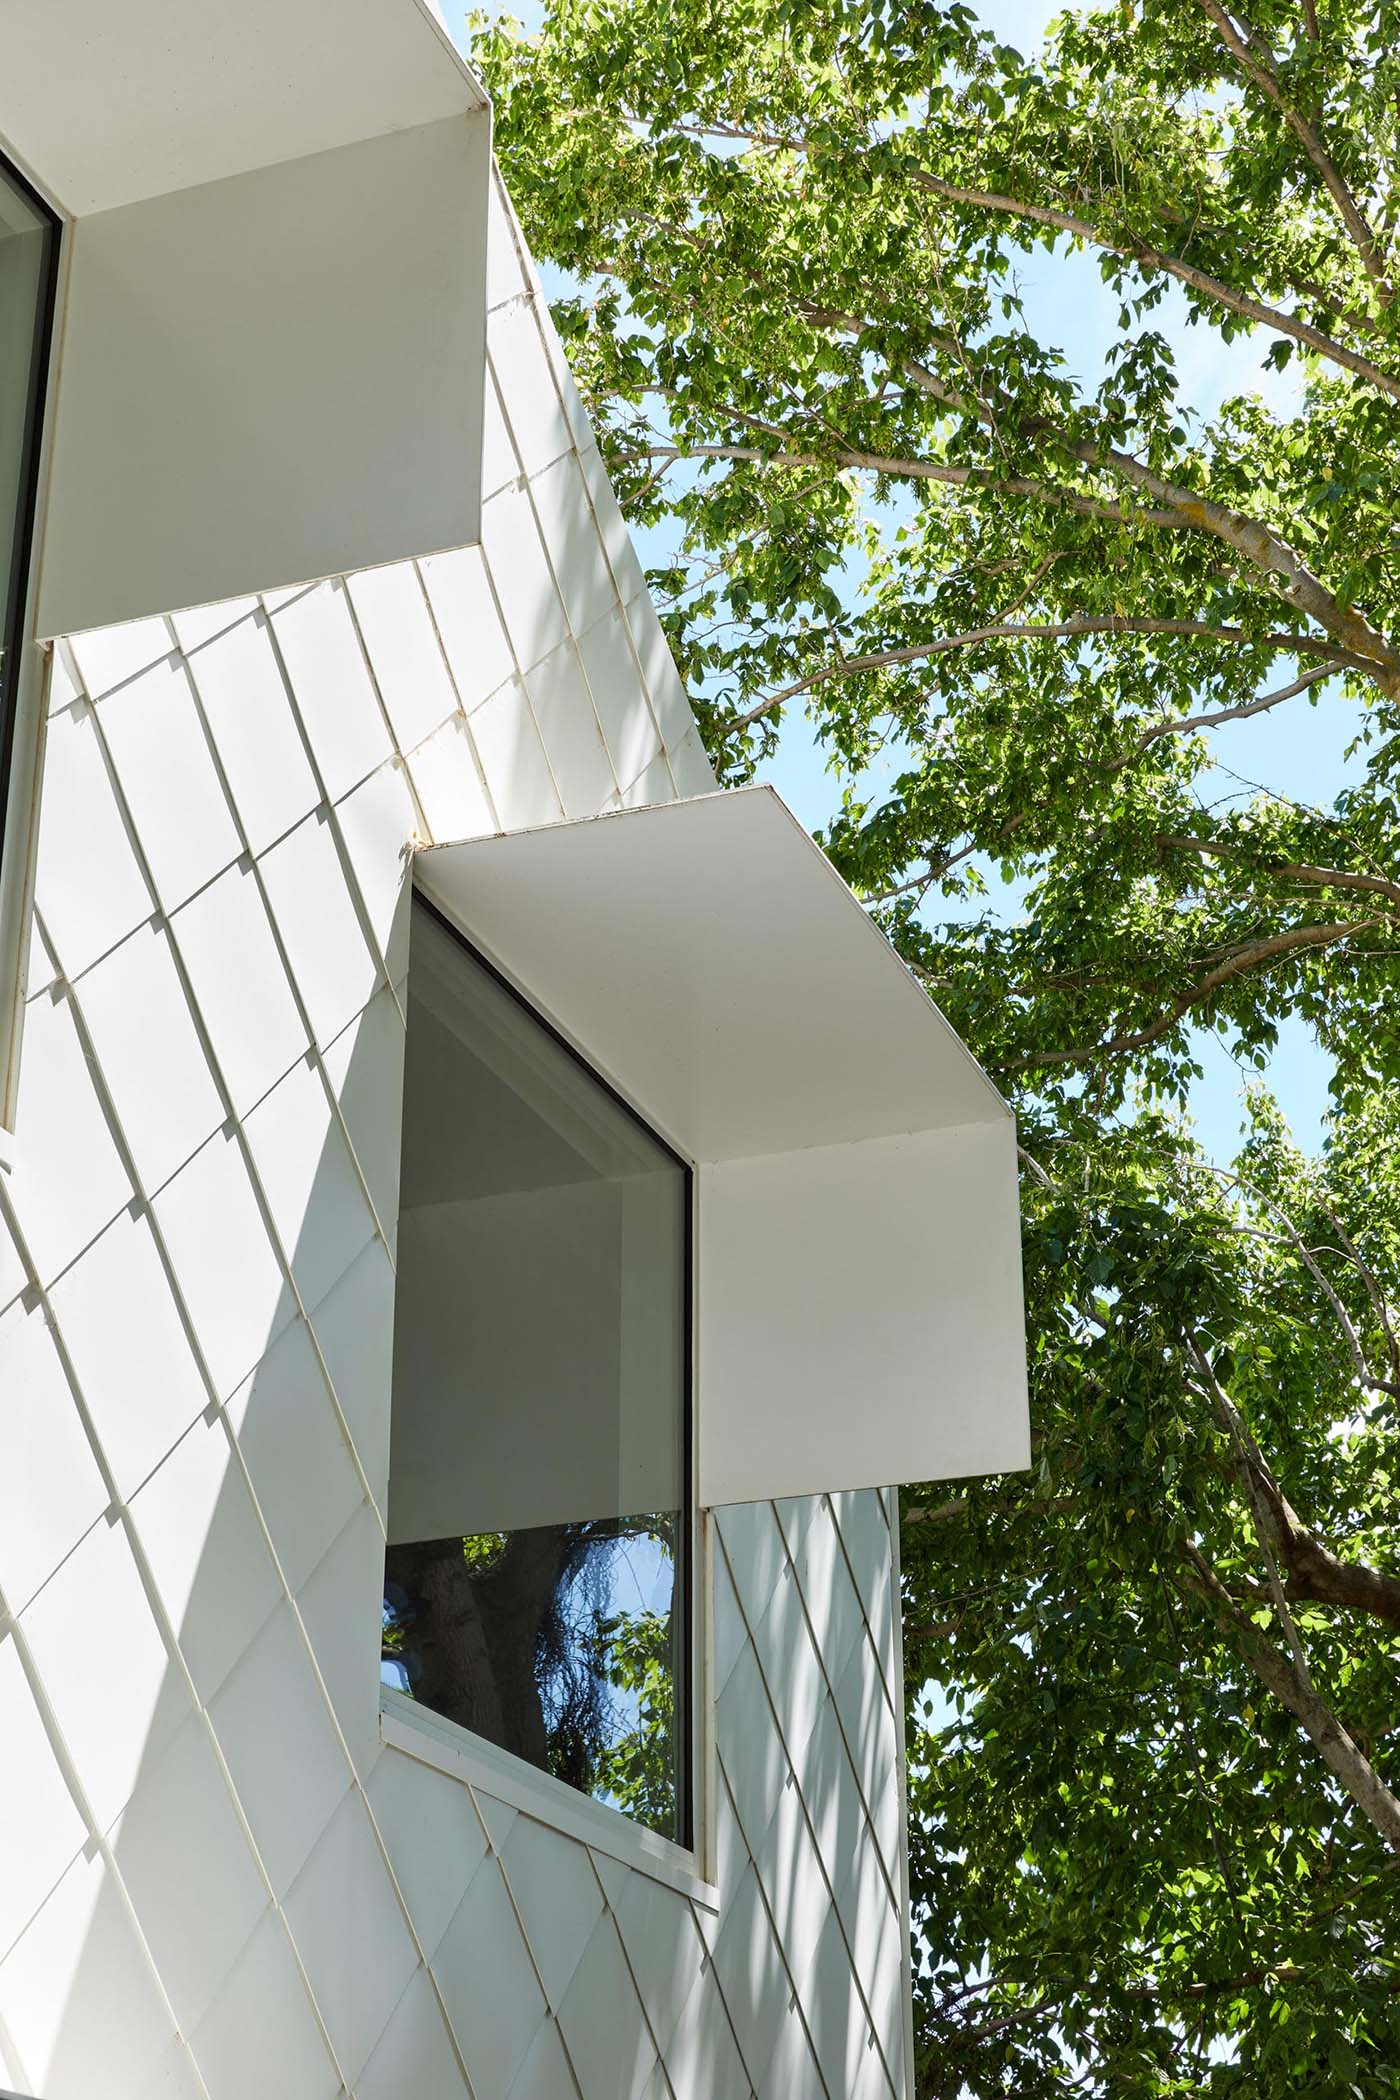 Metal awnings that protrude away from the house provide shade to the interior spaces when it's sunny.